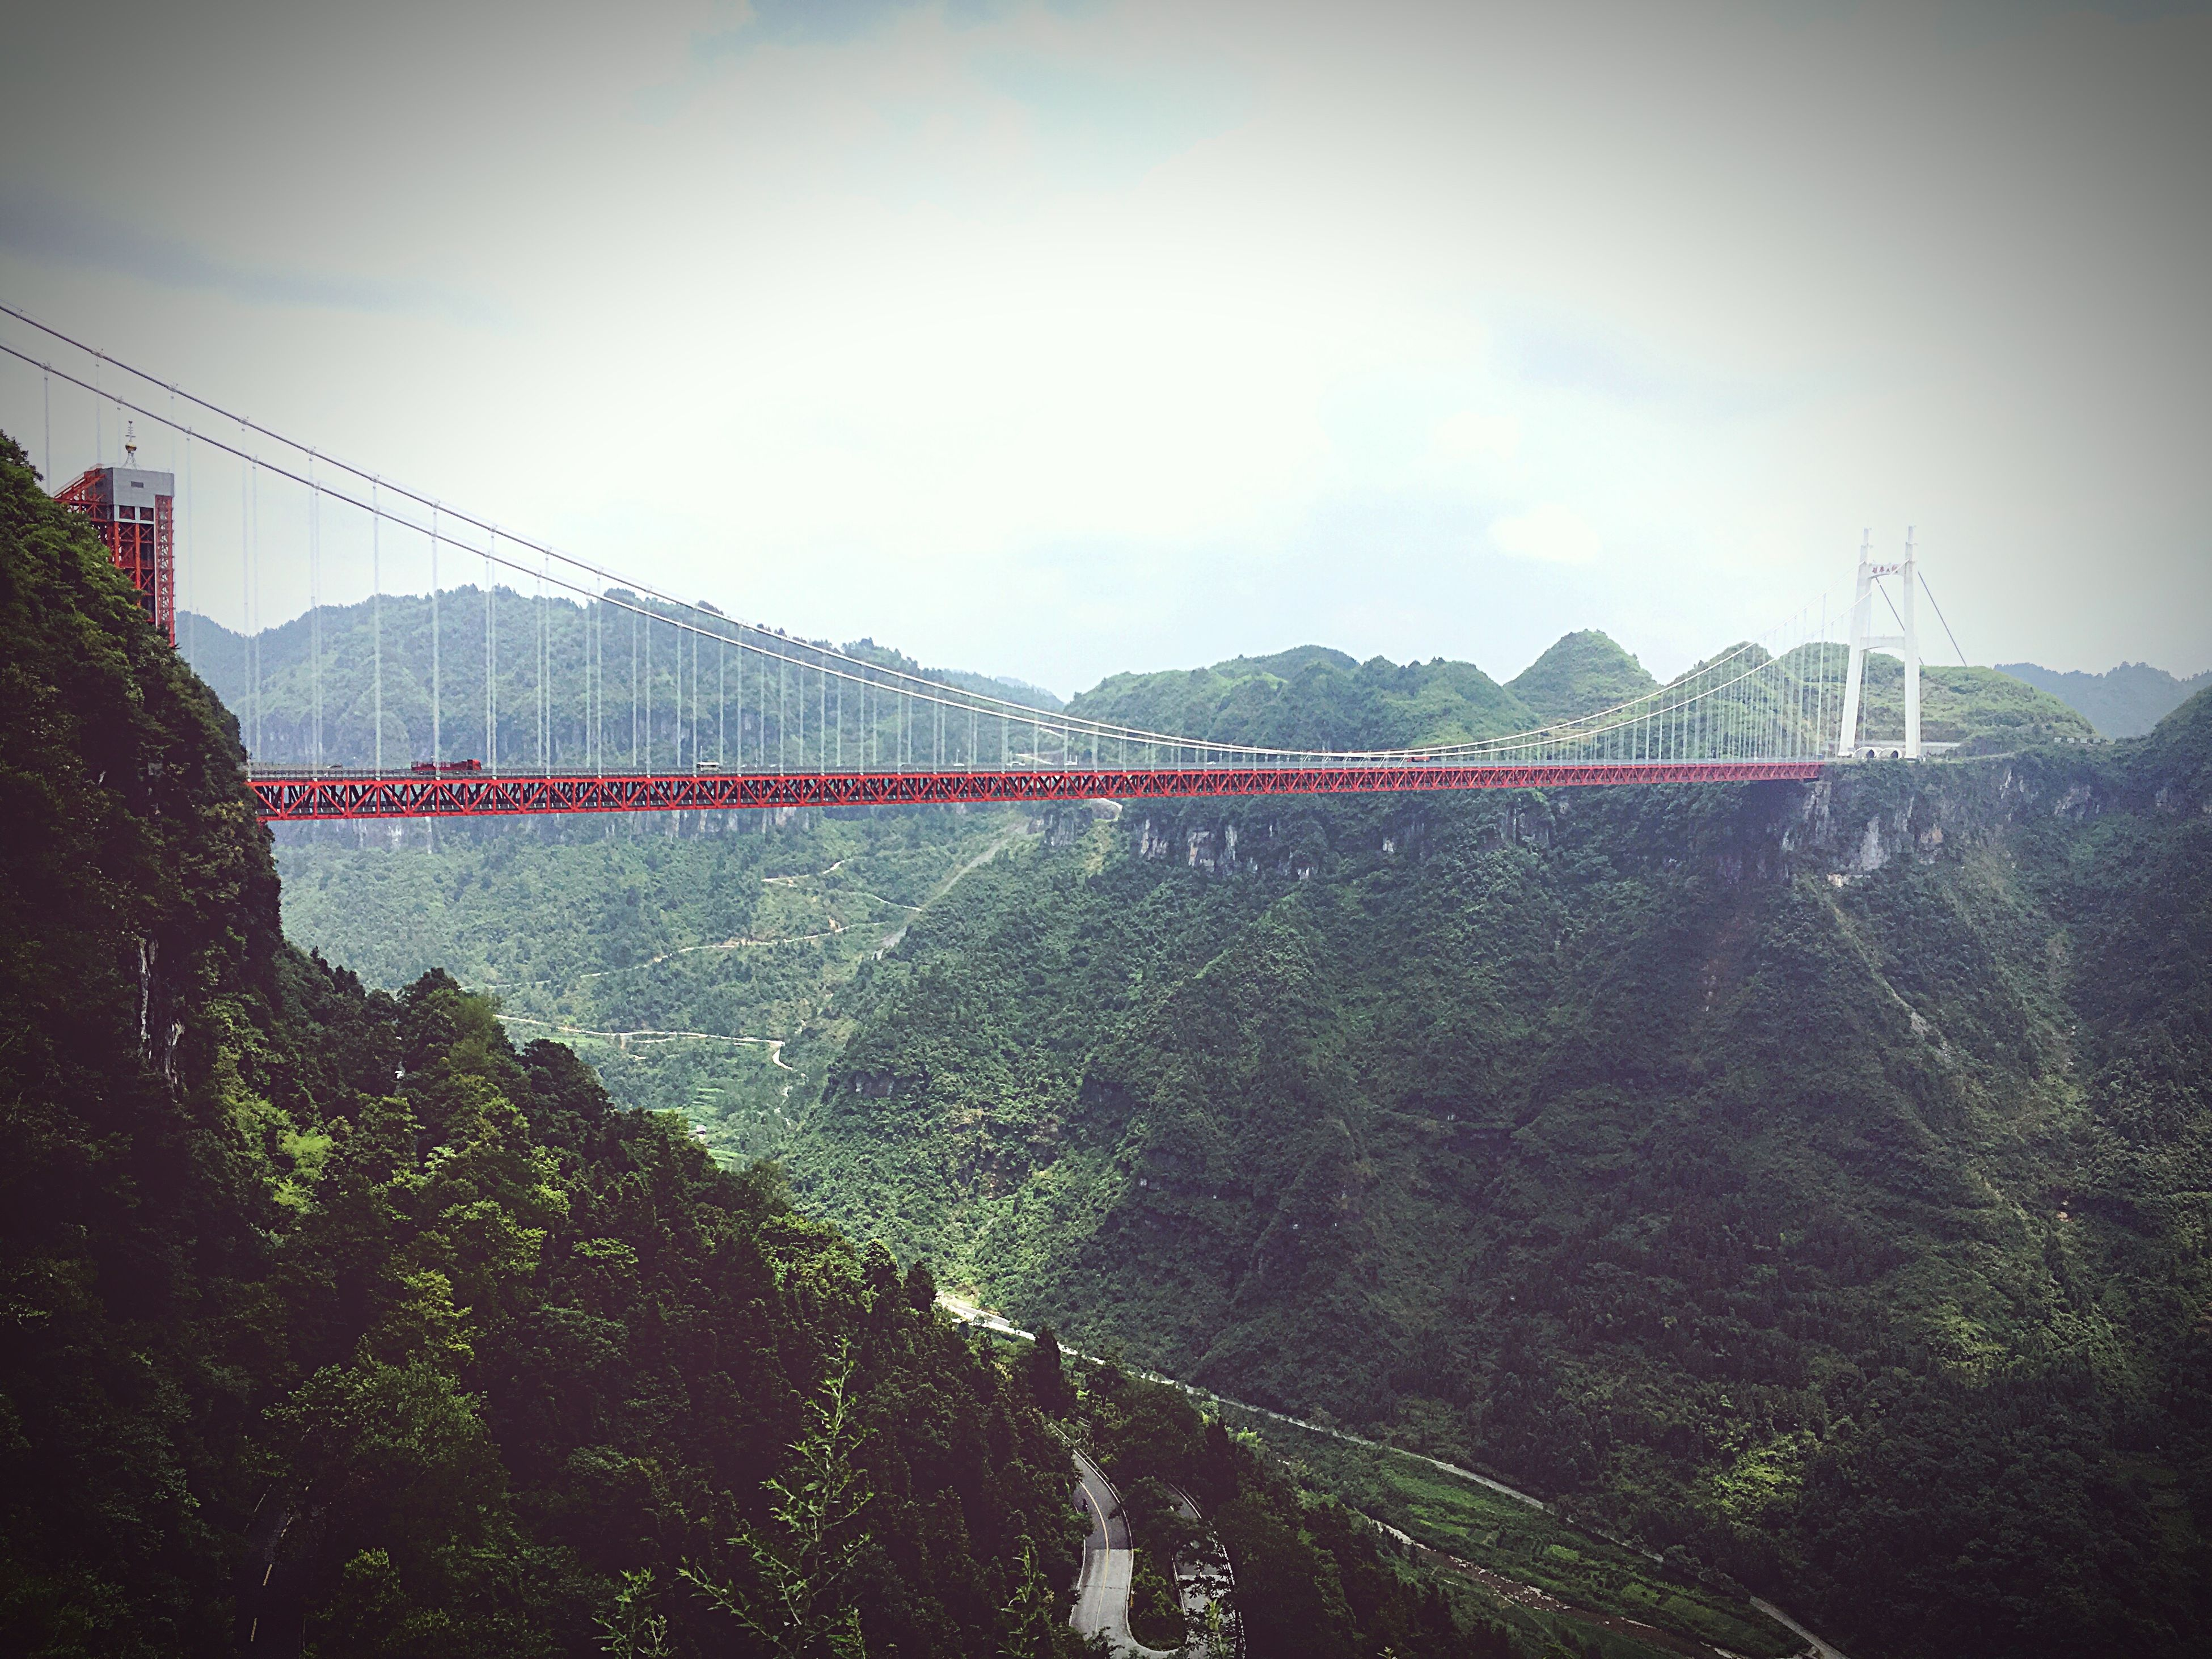 architecture, built structure, water, connection, bridge - man made structure, sky, suspension bridge, river, engineering, city, outdoors, nature, travel destinations, day, no people, cloud - sky, tranquility, scenics, cloud, development, tranquil scene, tourism, beauty in nature